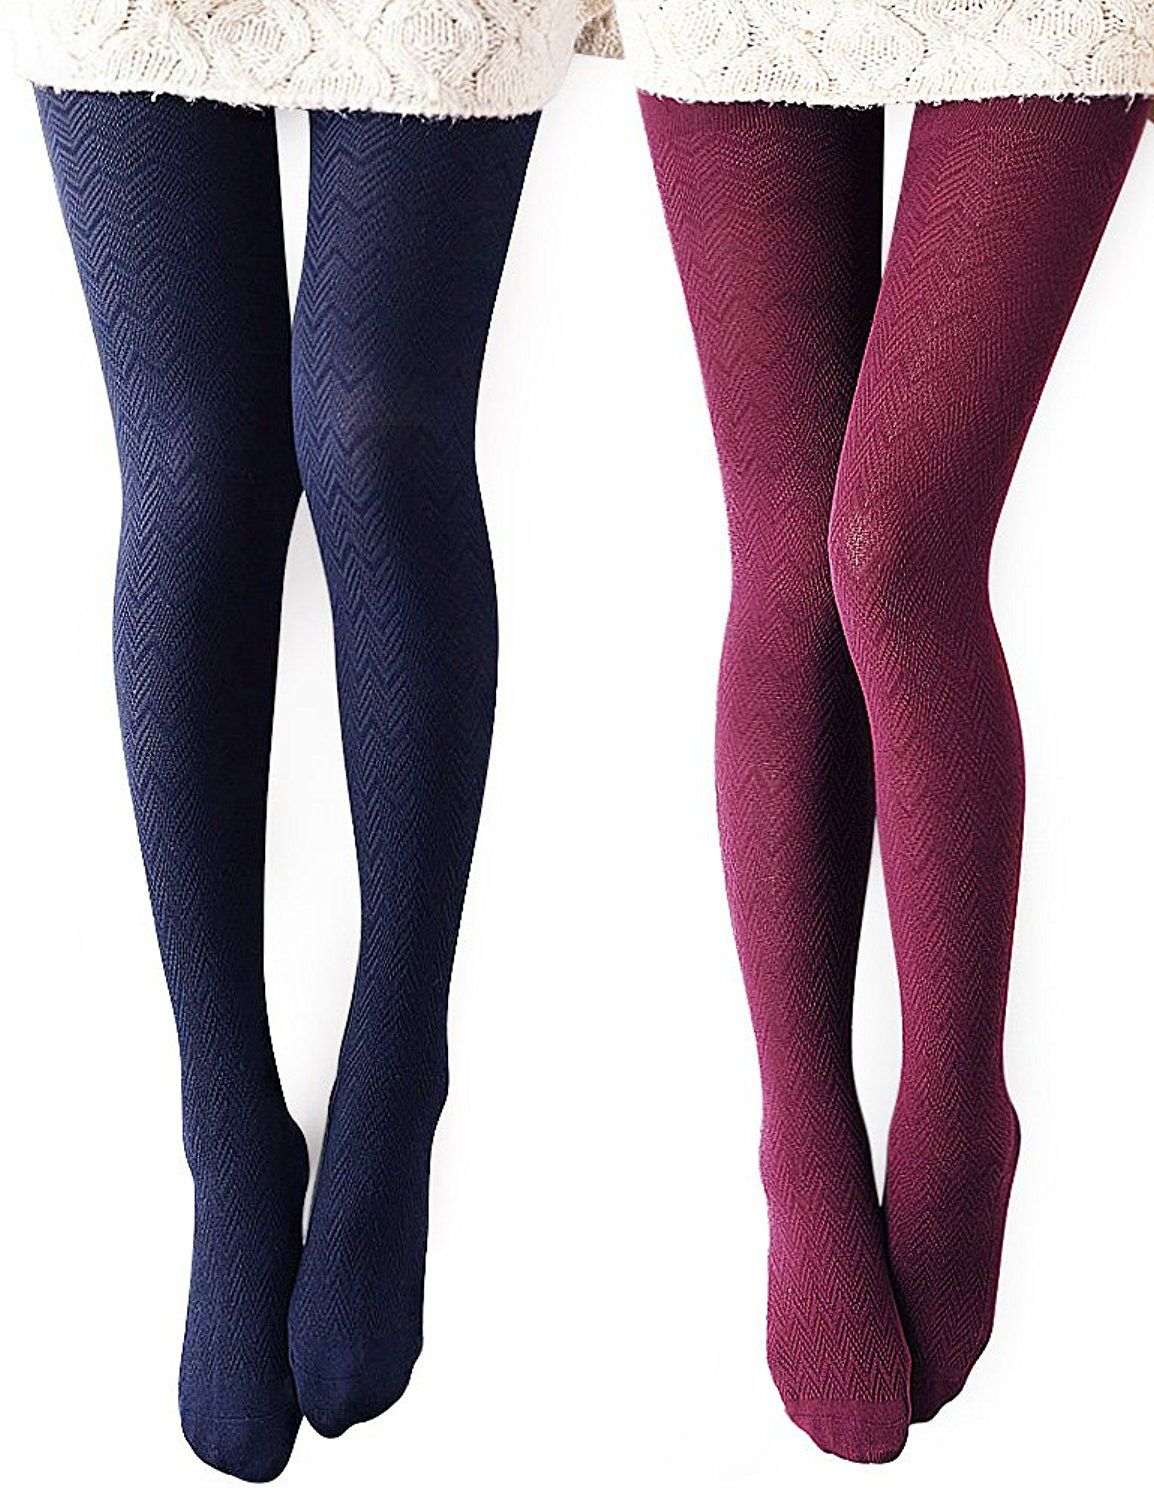 Vero Monte Women's Modal and Cotton Opaque Knitted Patterned Tights *** Find out more about the great product at the image link.